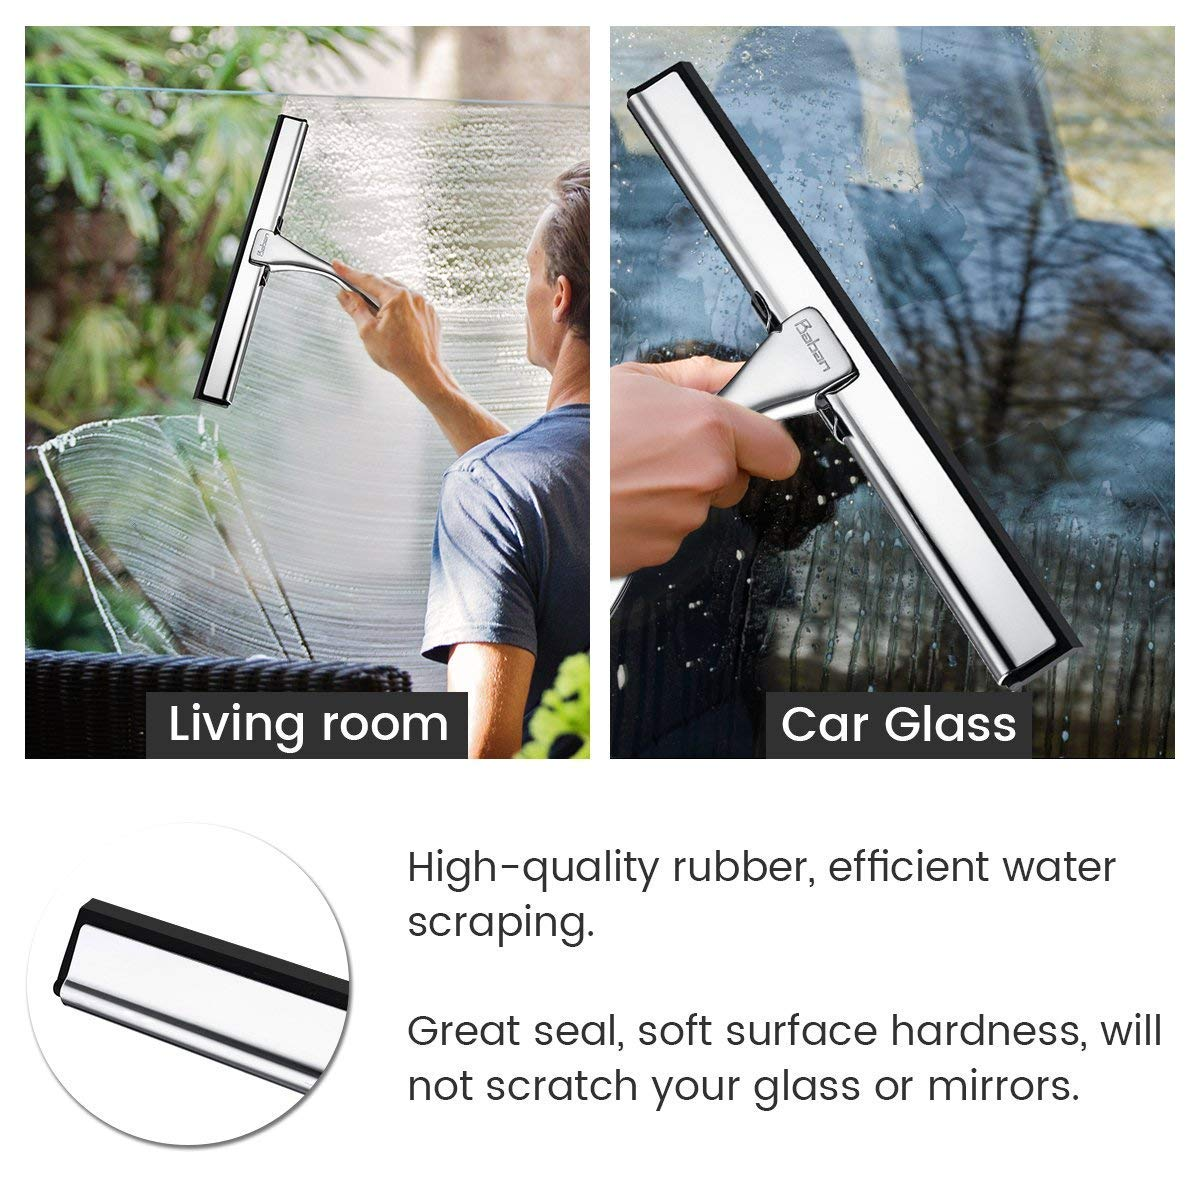 Baban Shower Squeegee Glass Squeegee Window Squeegee All Purpose